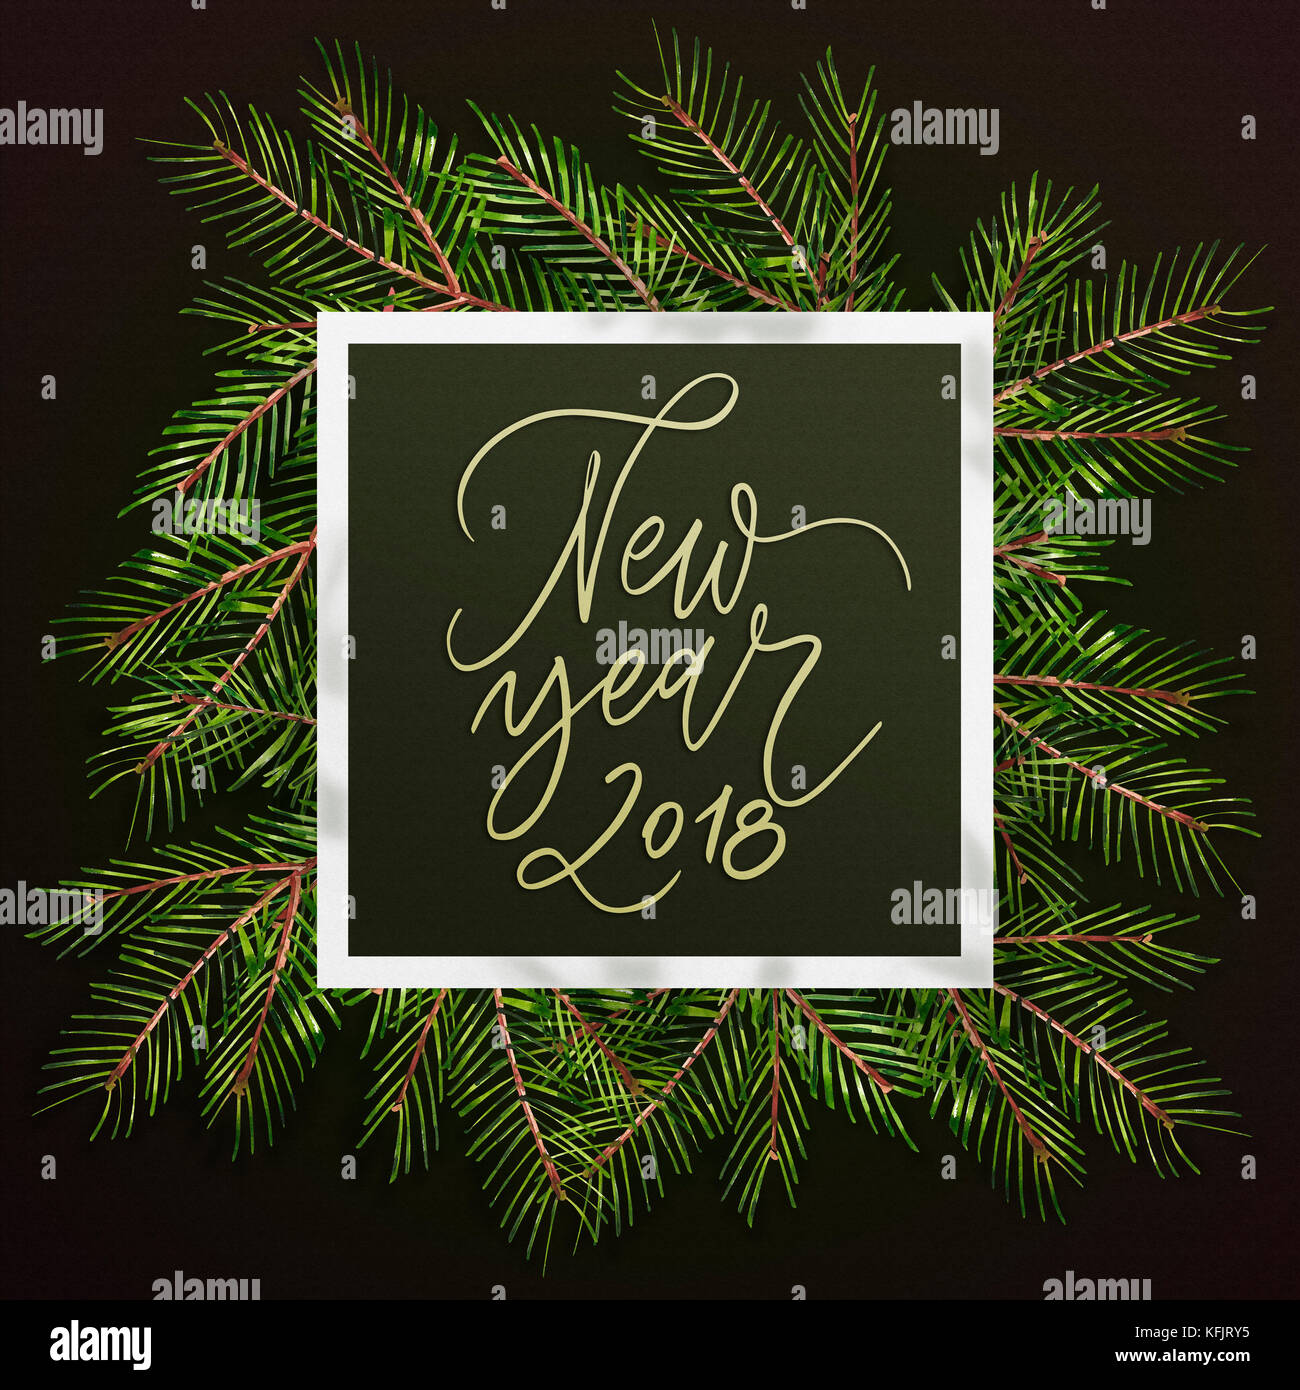 happy new year 2018 phrase christmas text on pine tree branches background new year promotion placard for shop calligraphy lettering text